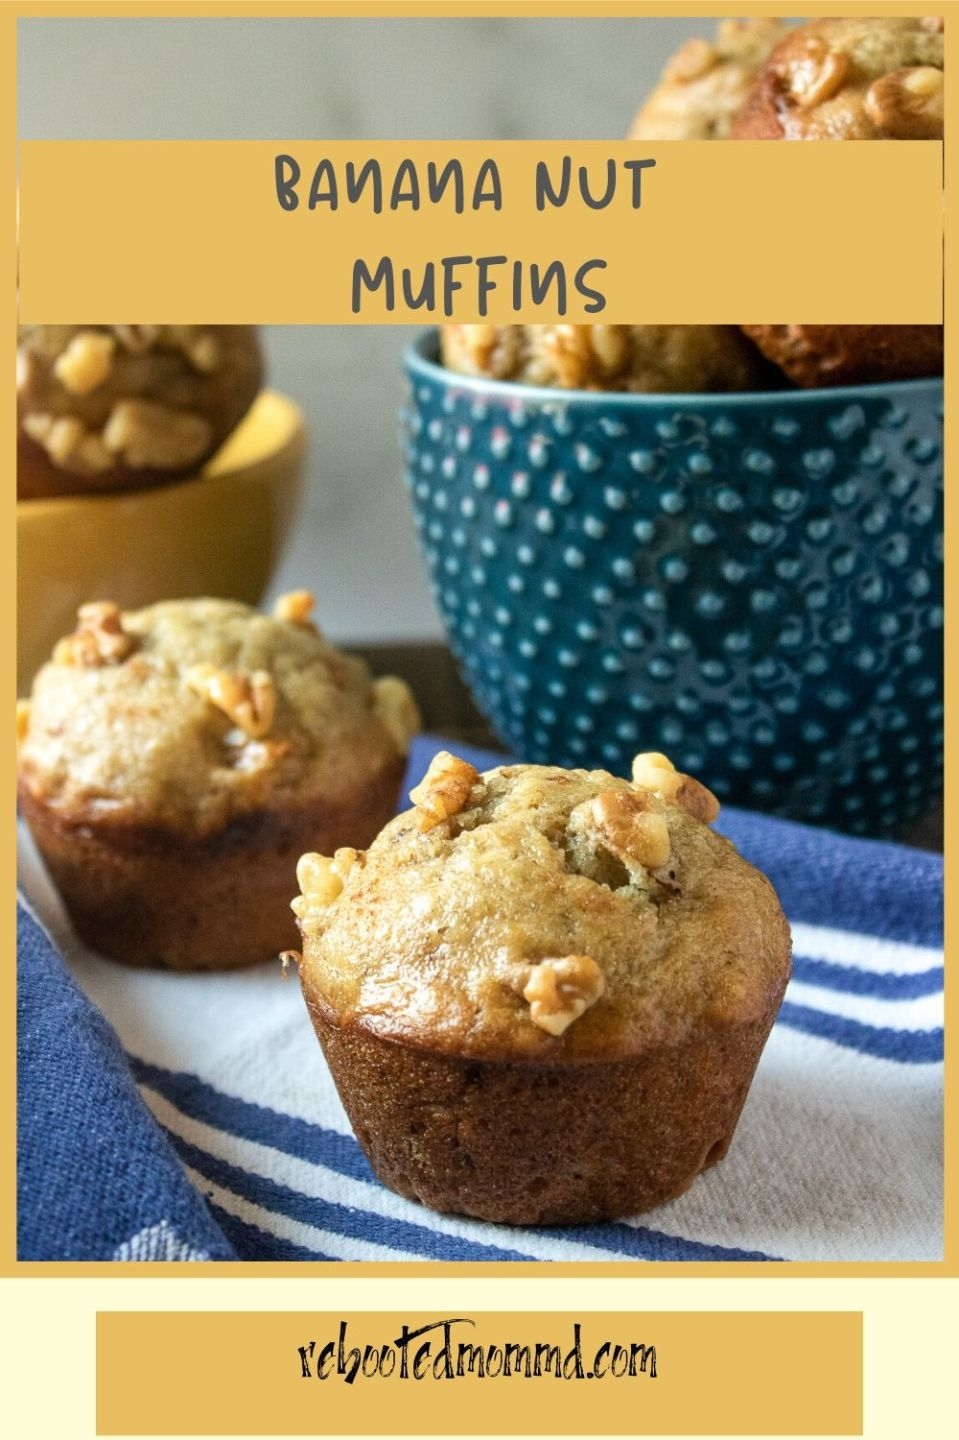 National Muffin Day: Banana Nut Muffins